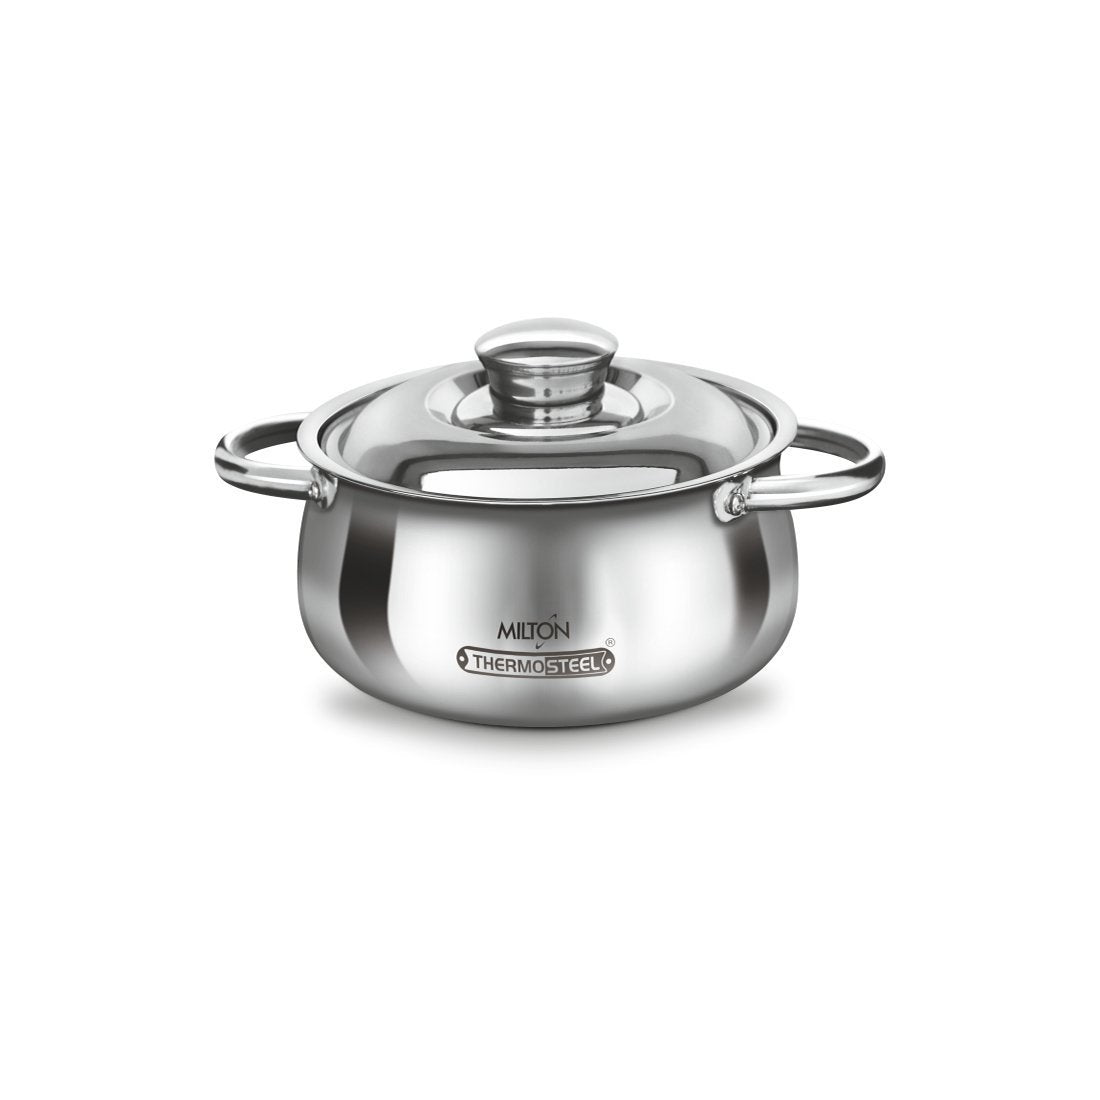 MILTON CAESAR INSULATED STEEL CASSEROLE 1000